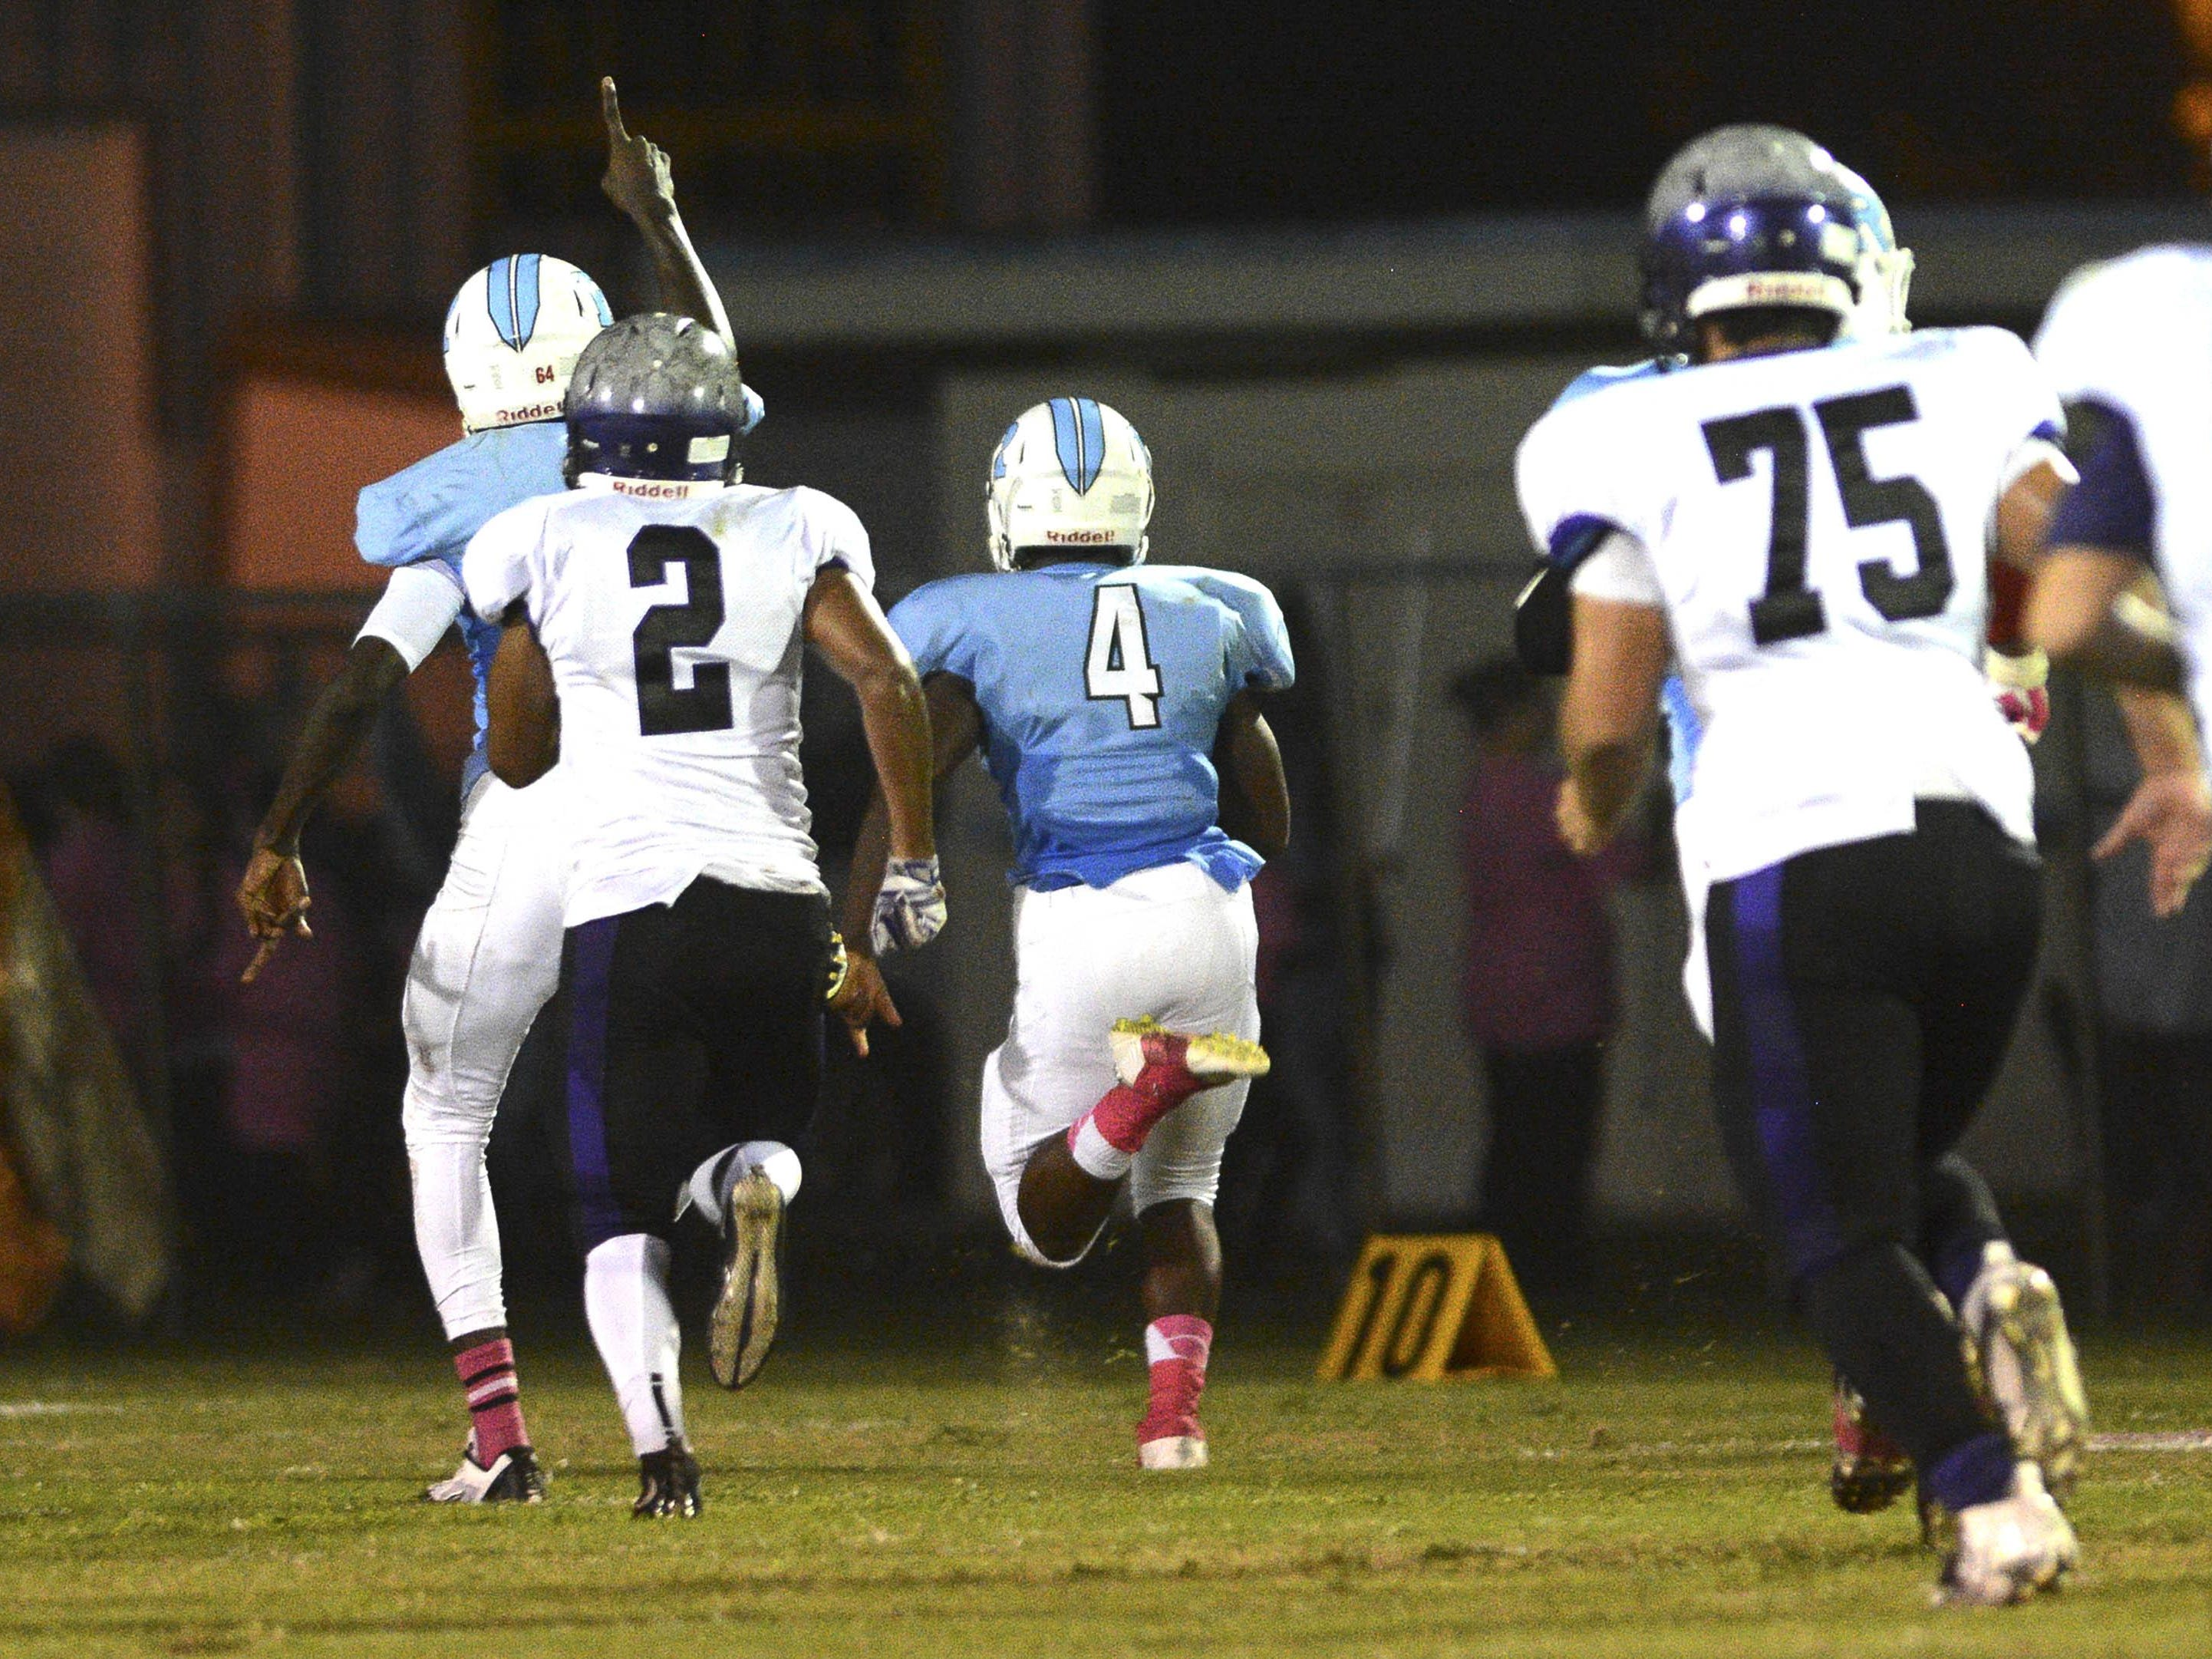 Rockledge's LaQuentin Hastie takes a recovered fumble all the way to the end zone during Friday's game at McLarty Stadium.